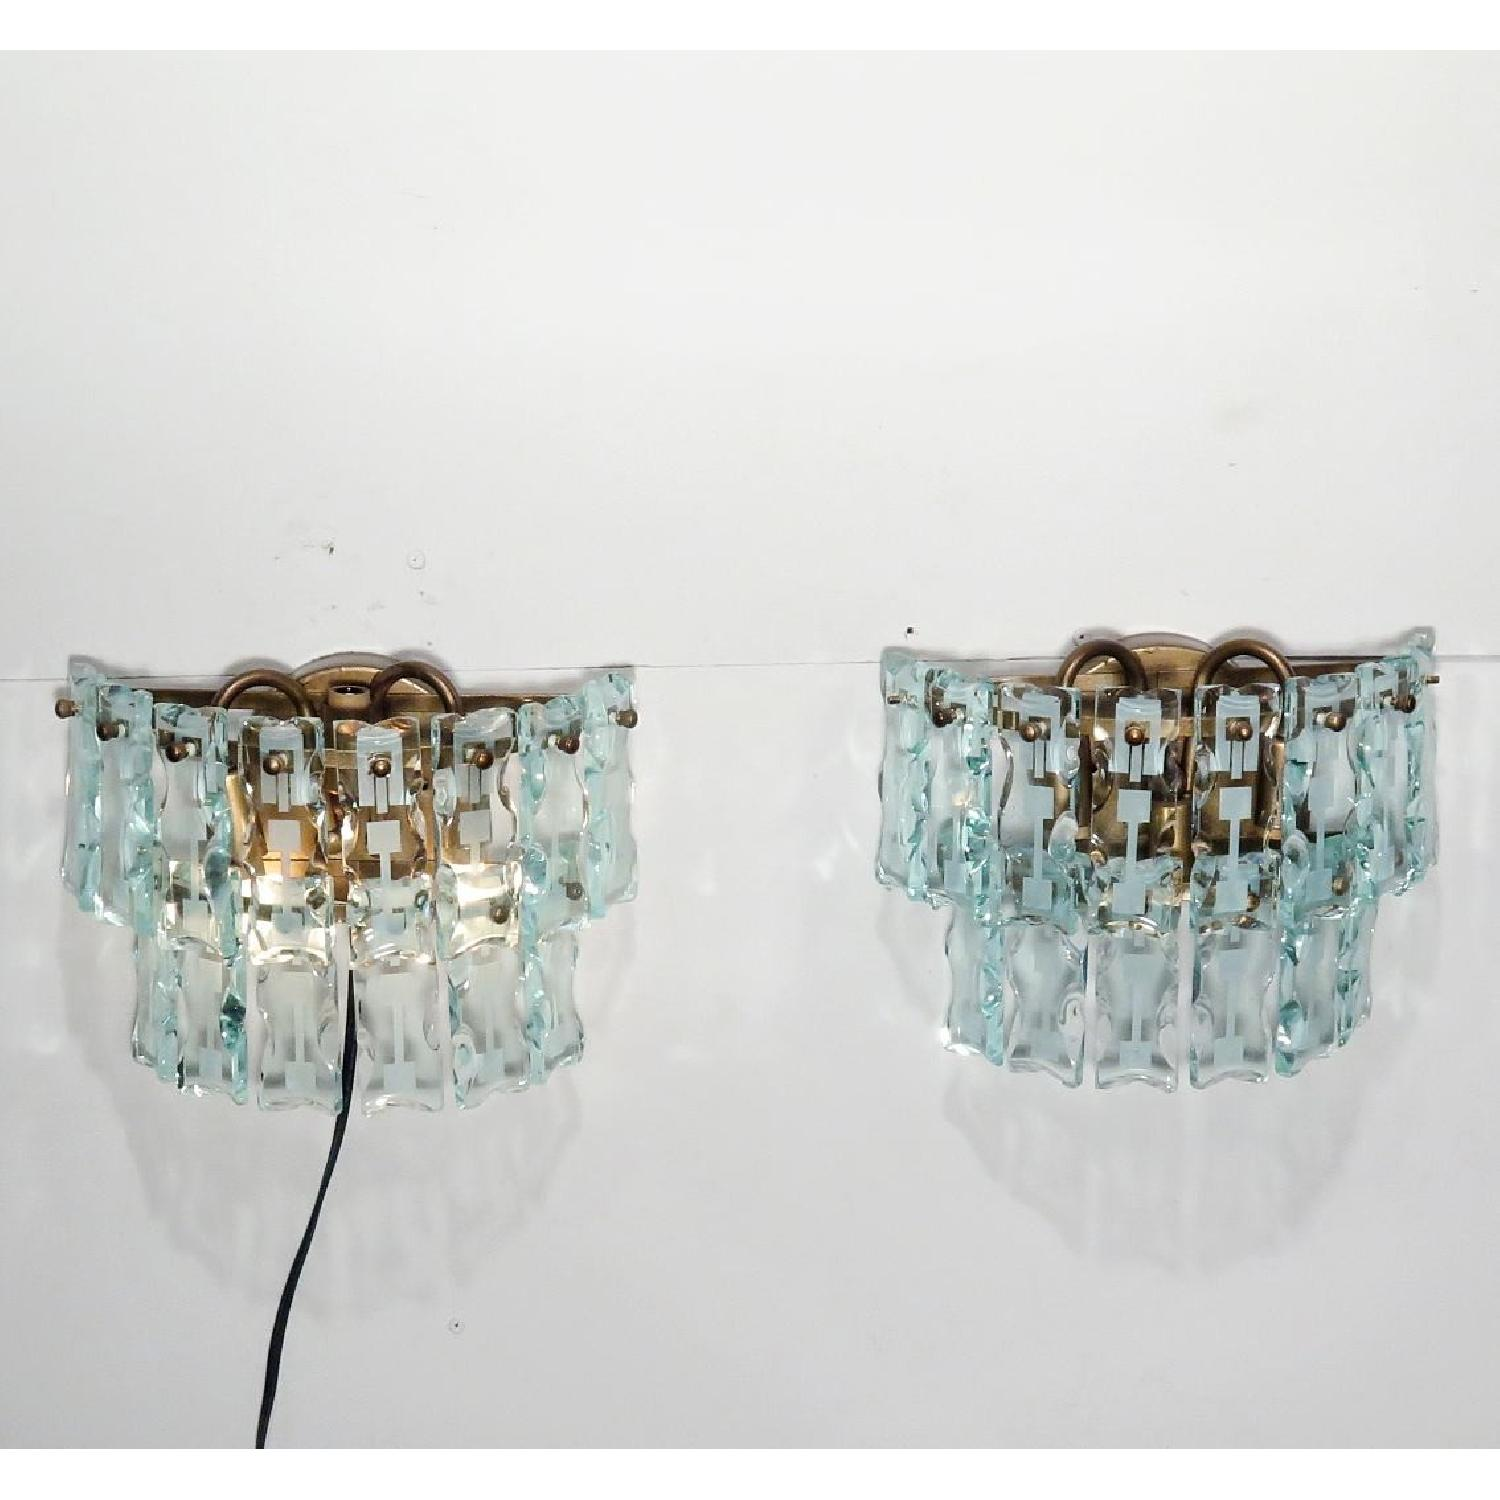 Vintage Mid-Century 3 Light Hanging Glass Bars/Sconces  - Pair - image-1